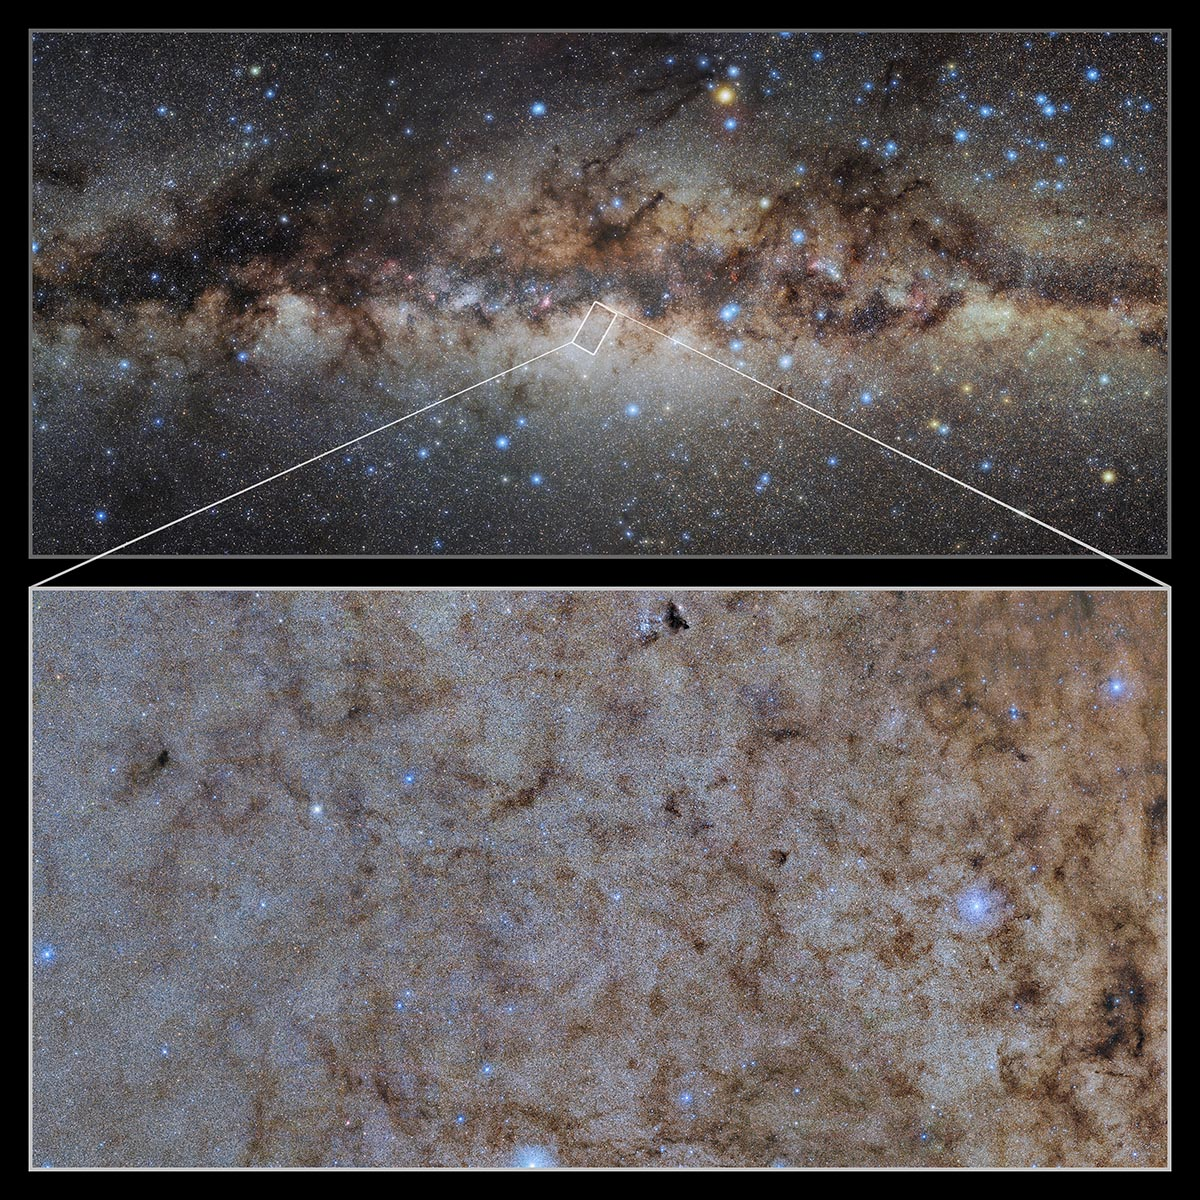 This image shows a wide-field view of the center of the Milky Way with a pull-out image of the Dark Energy Camera (DECam) at the Cerro Tololo Inter-American Observatory in Chile, a Program of NSF's NOIRLab.